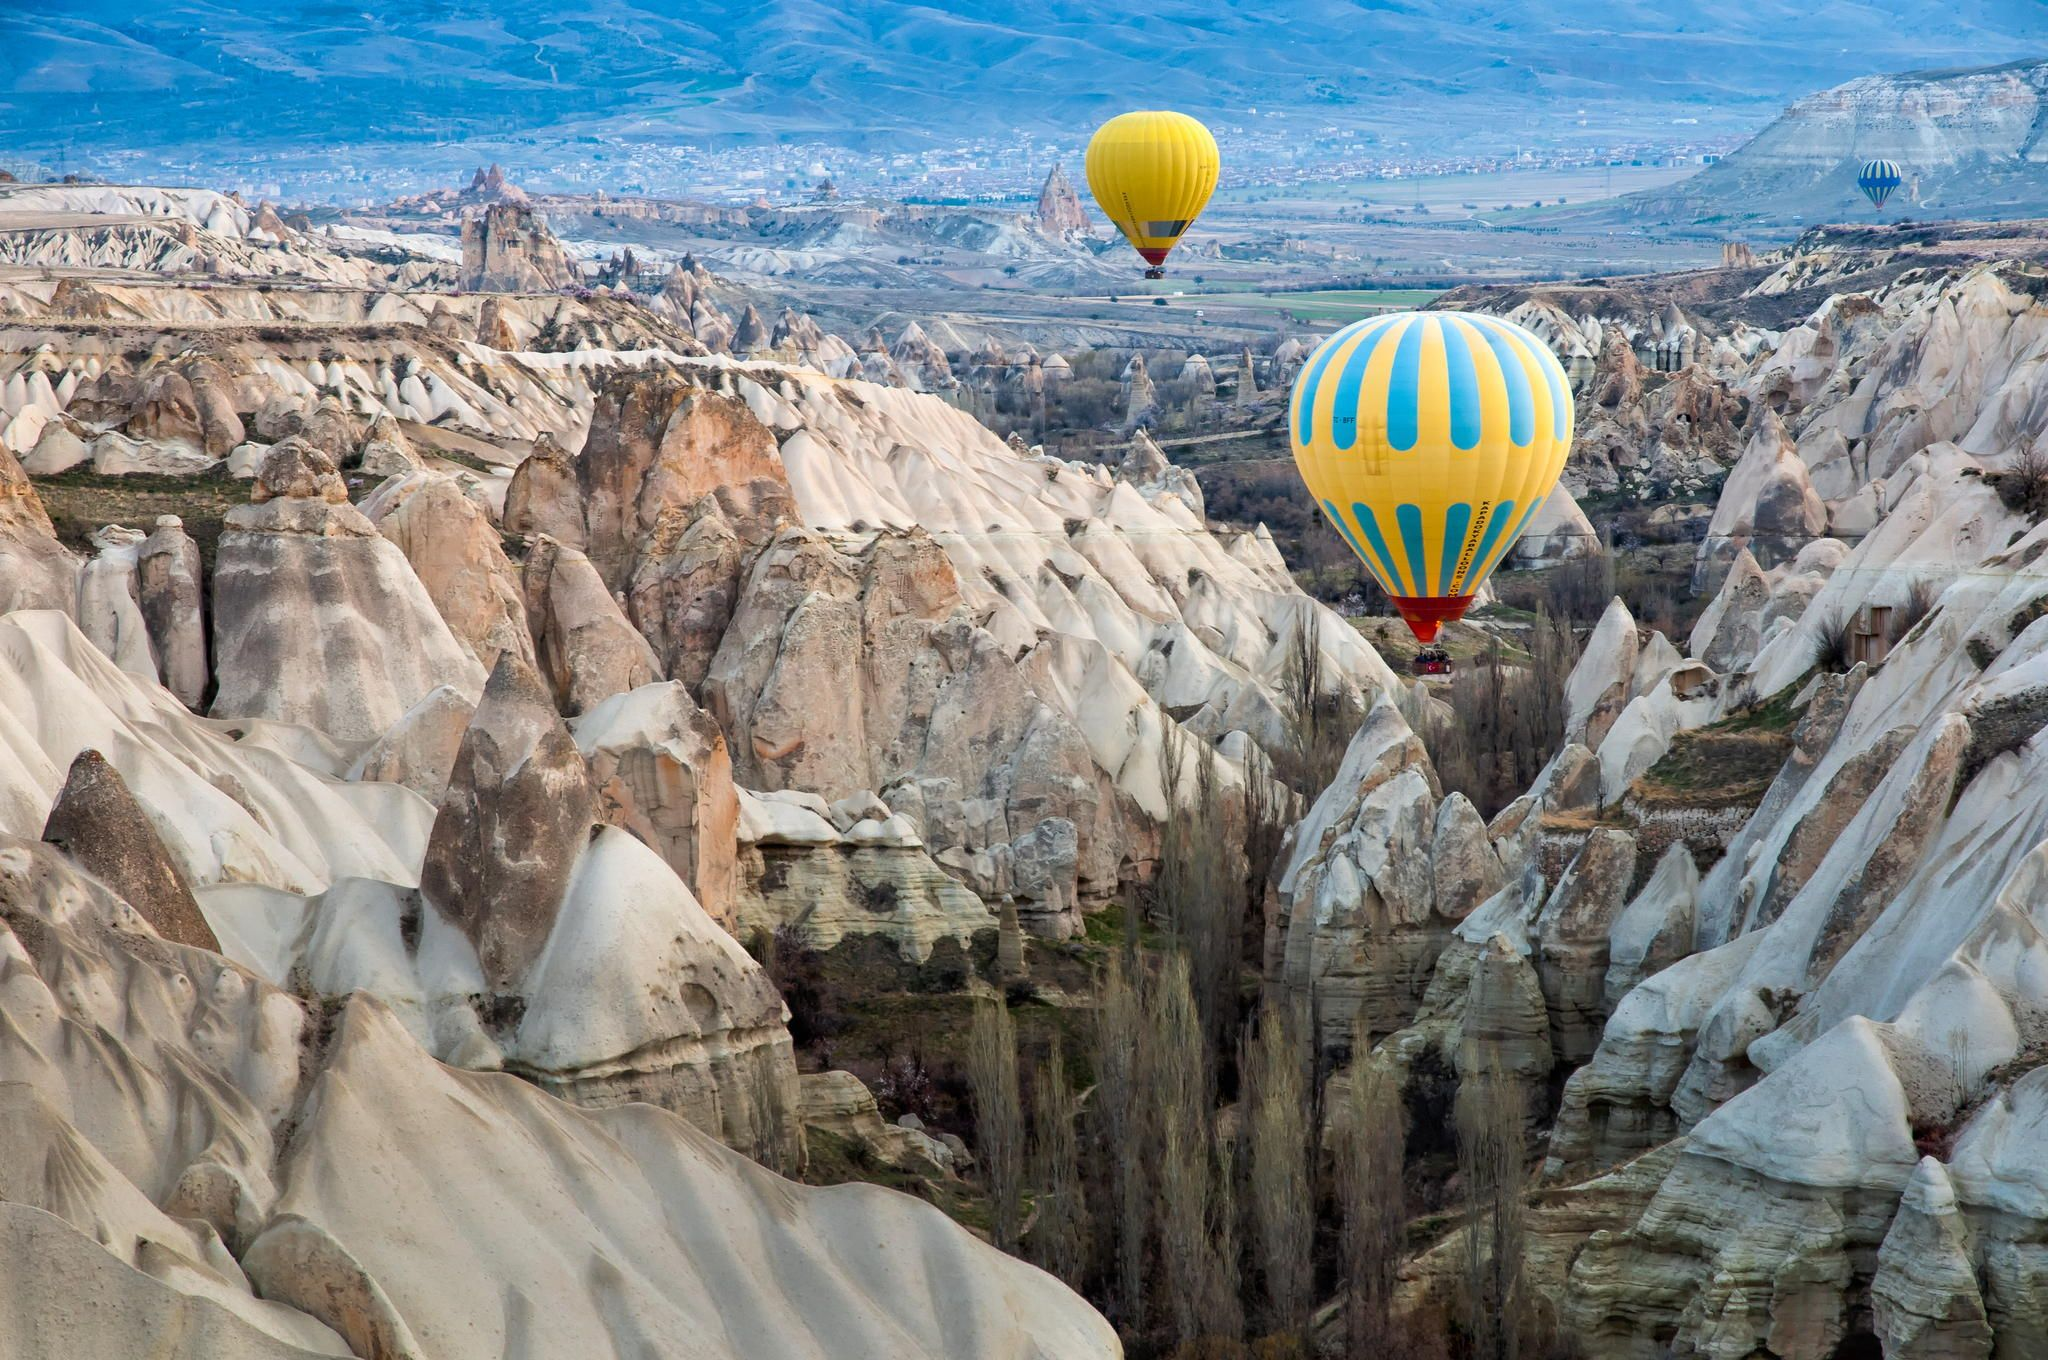 Flying hot air balloon over Cappadocia by Natapong P. on